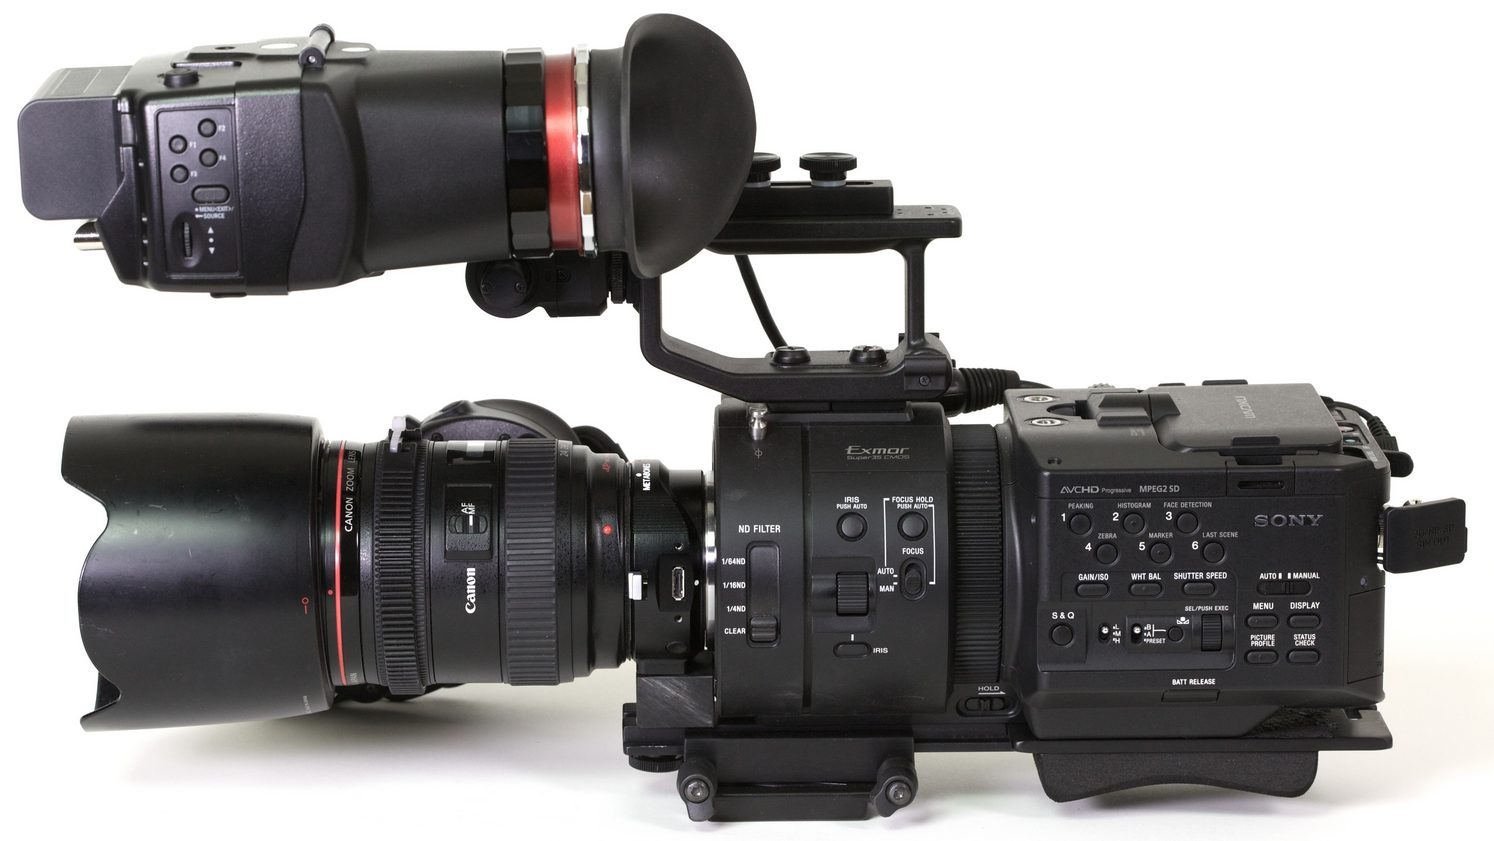 FS700 Price Drops By Another $1K